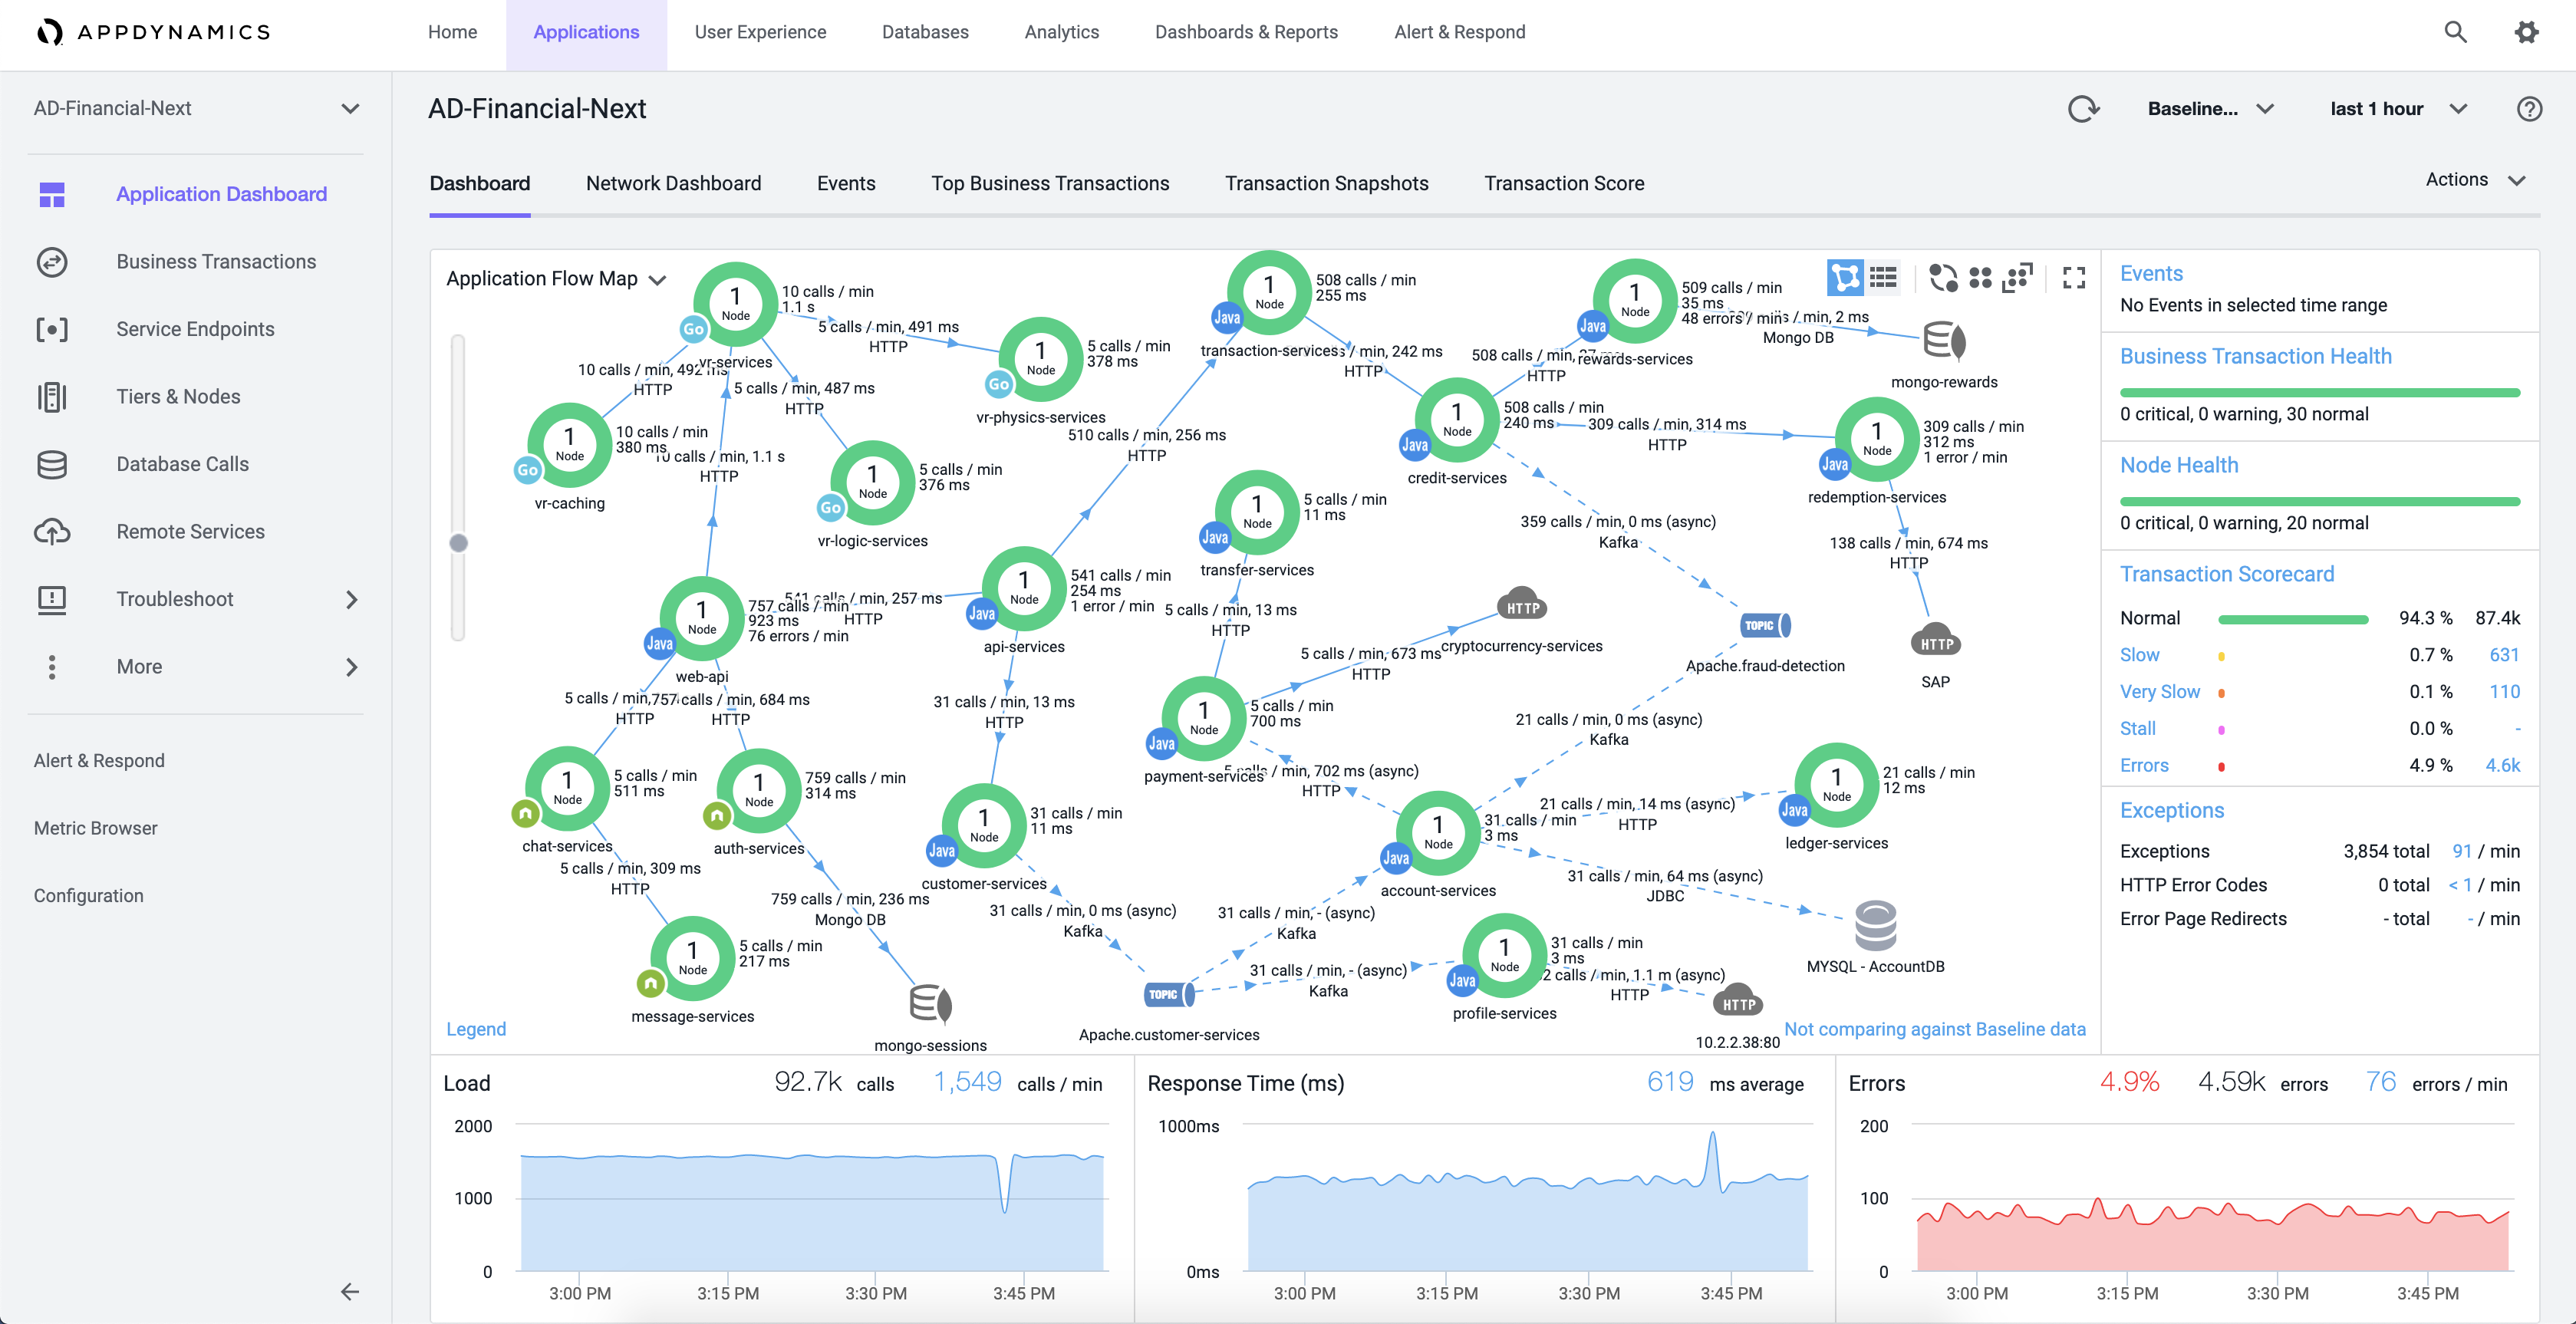 AD-Financial-Next Application Flow Map